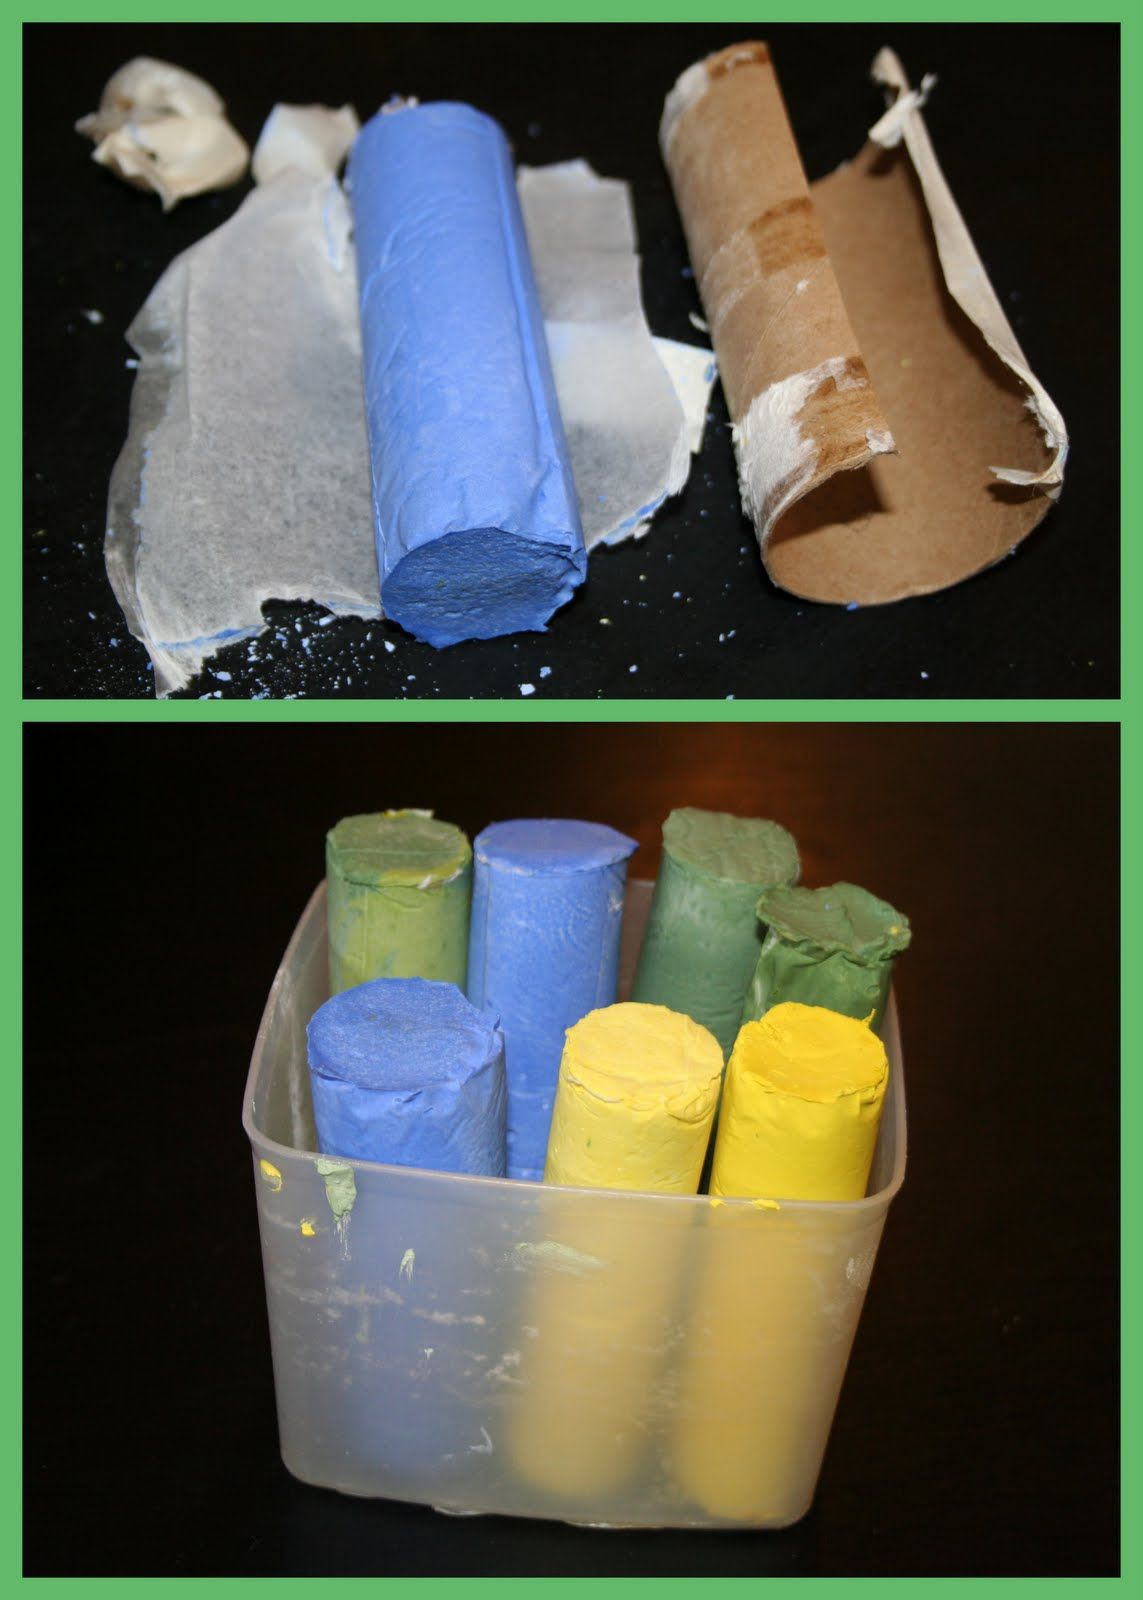 Making your own homemade sidewalk chalk is so simple and fun!  It is sturdier and less messy than the commercial chalk, which is great when ...